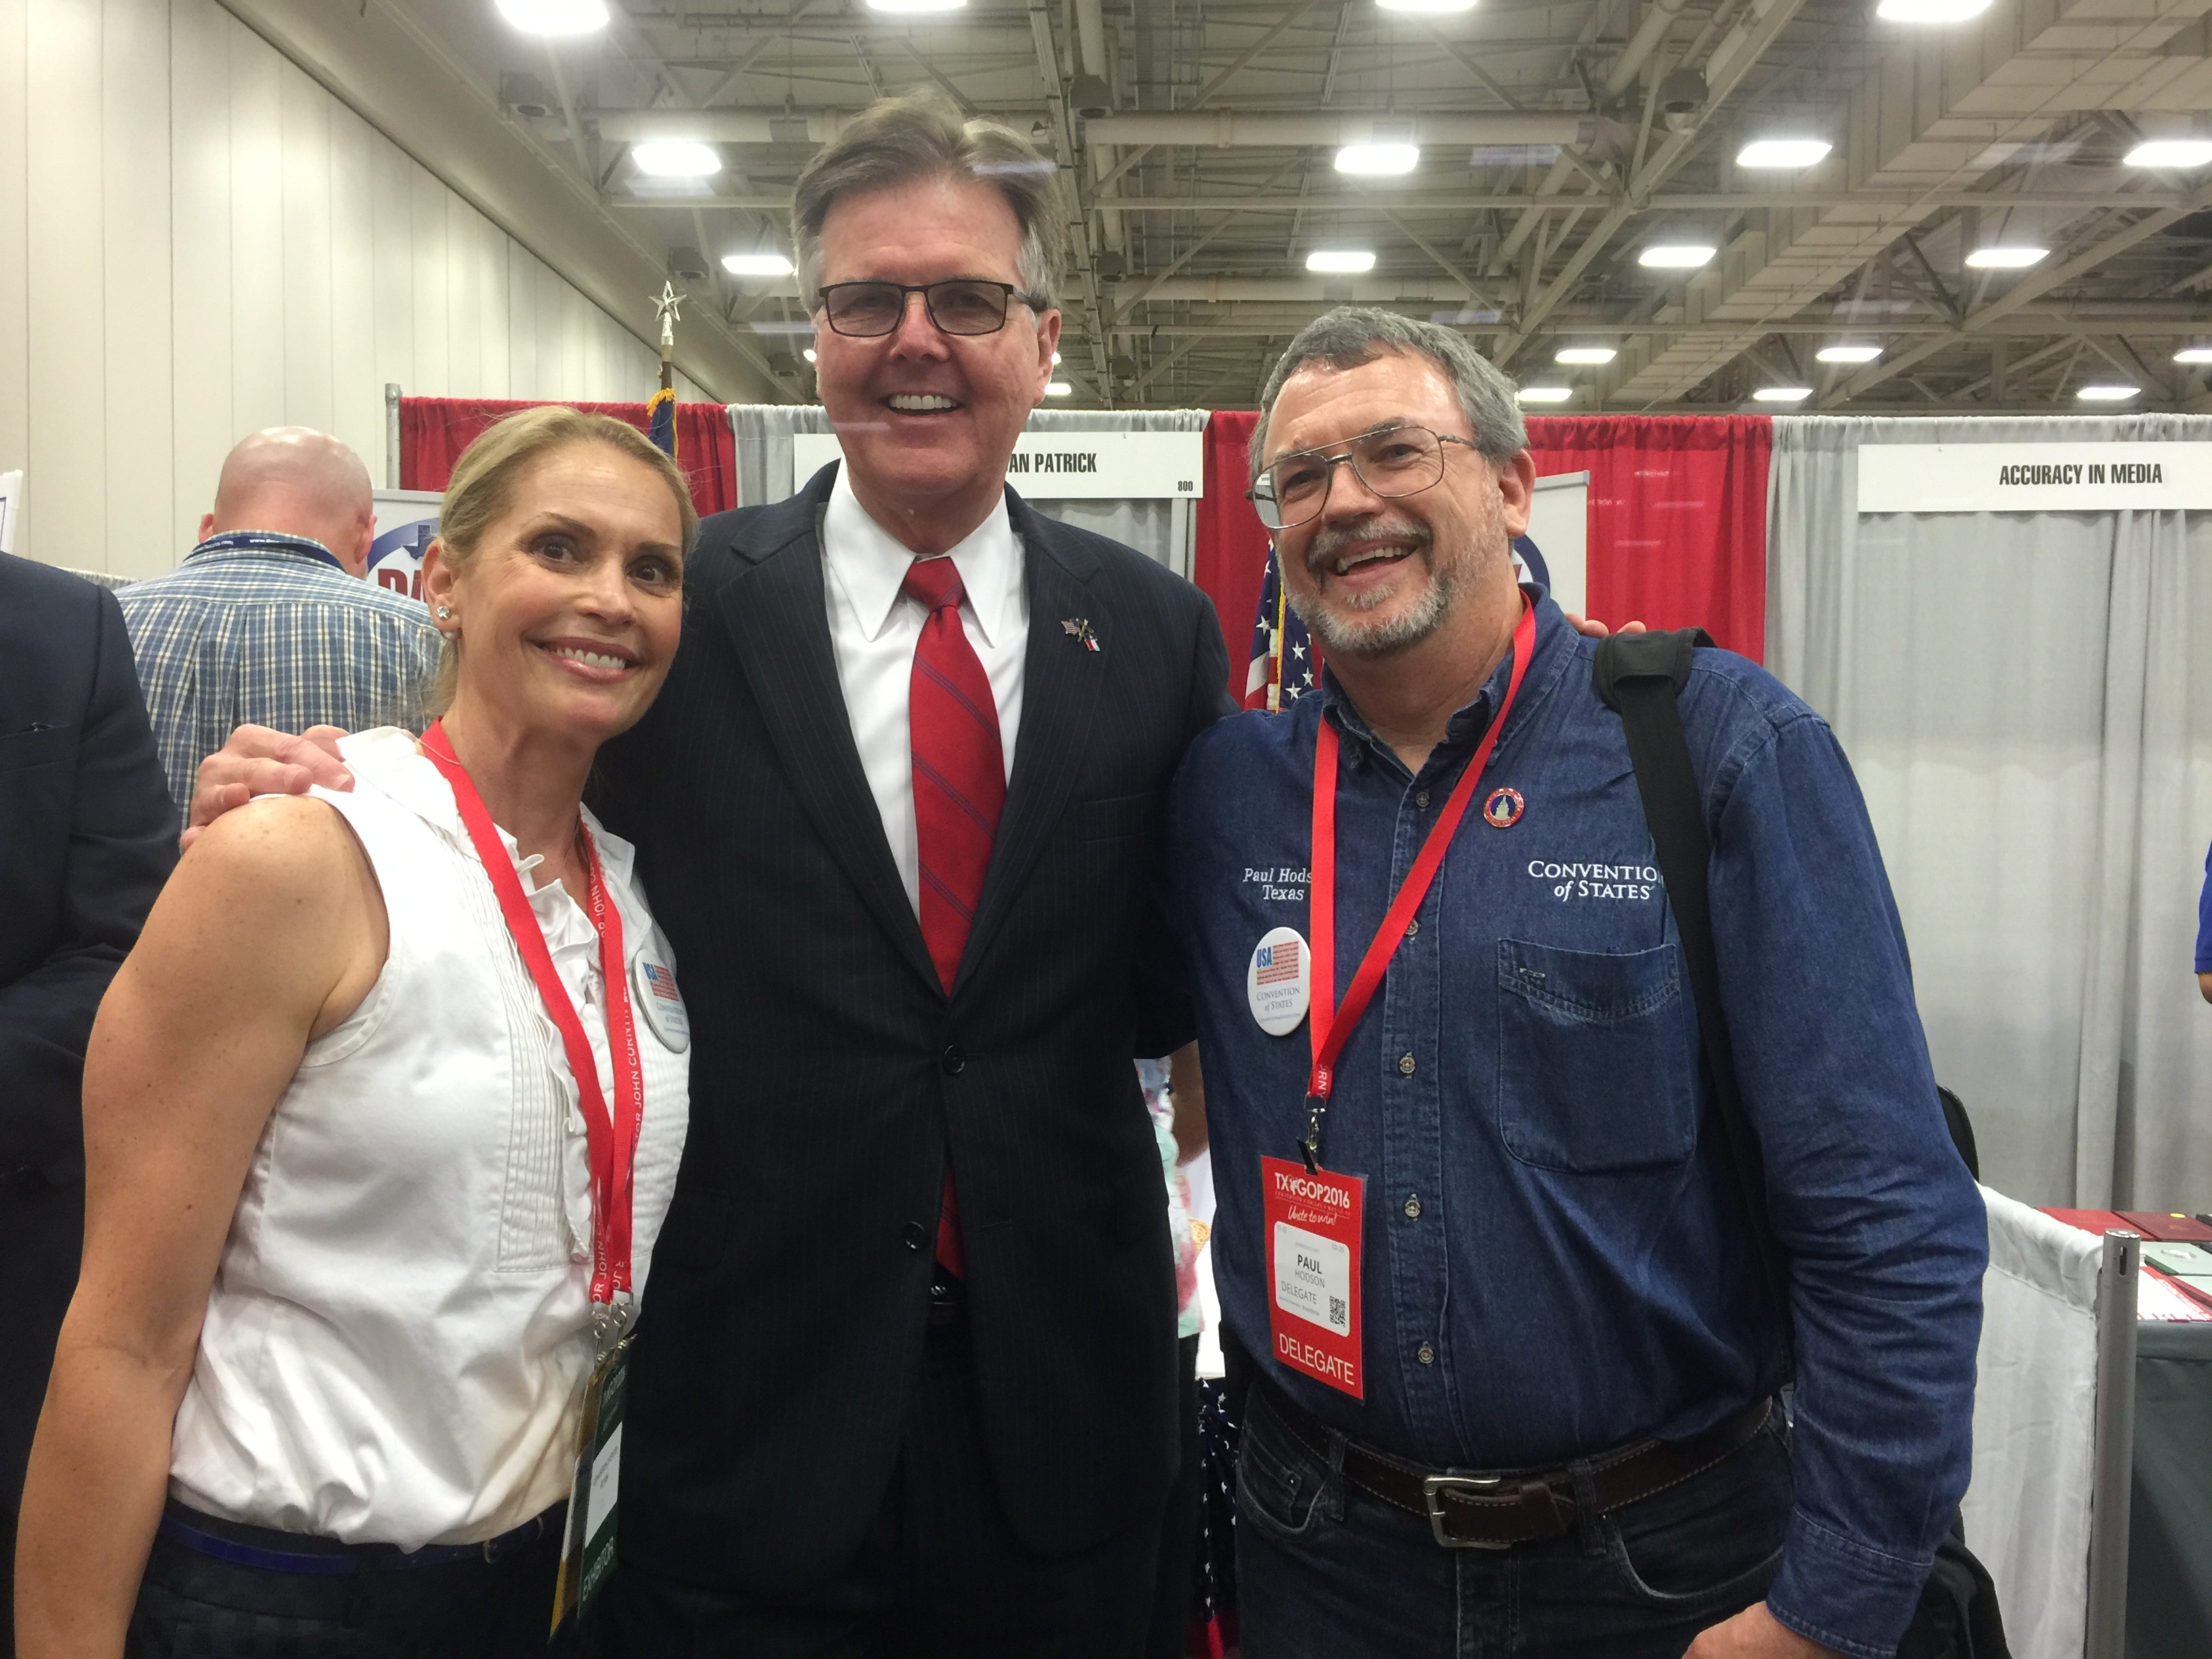 Lt._Gov._Dan_Patrick_with_Tamara_Colbert_and_Paul_Hodson.JPG